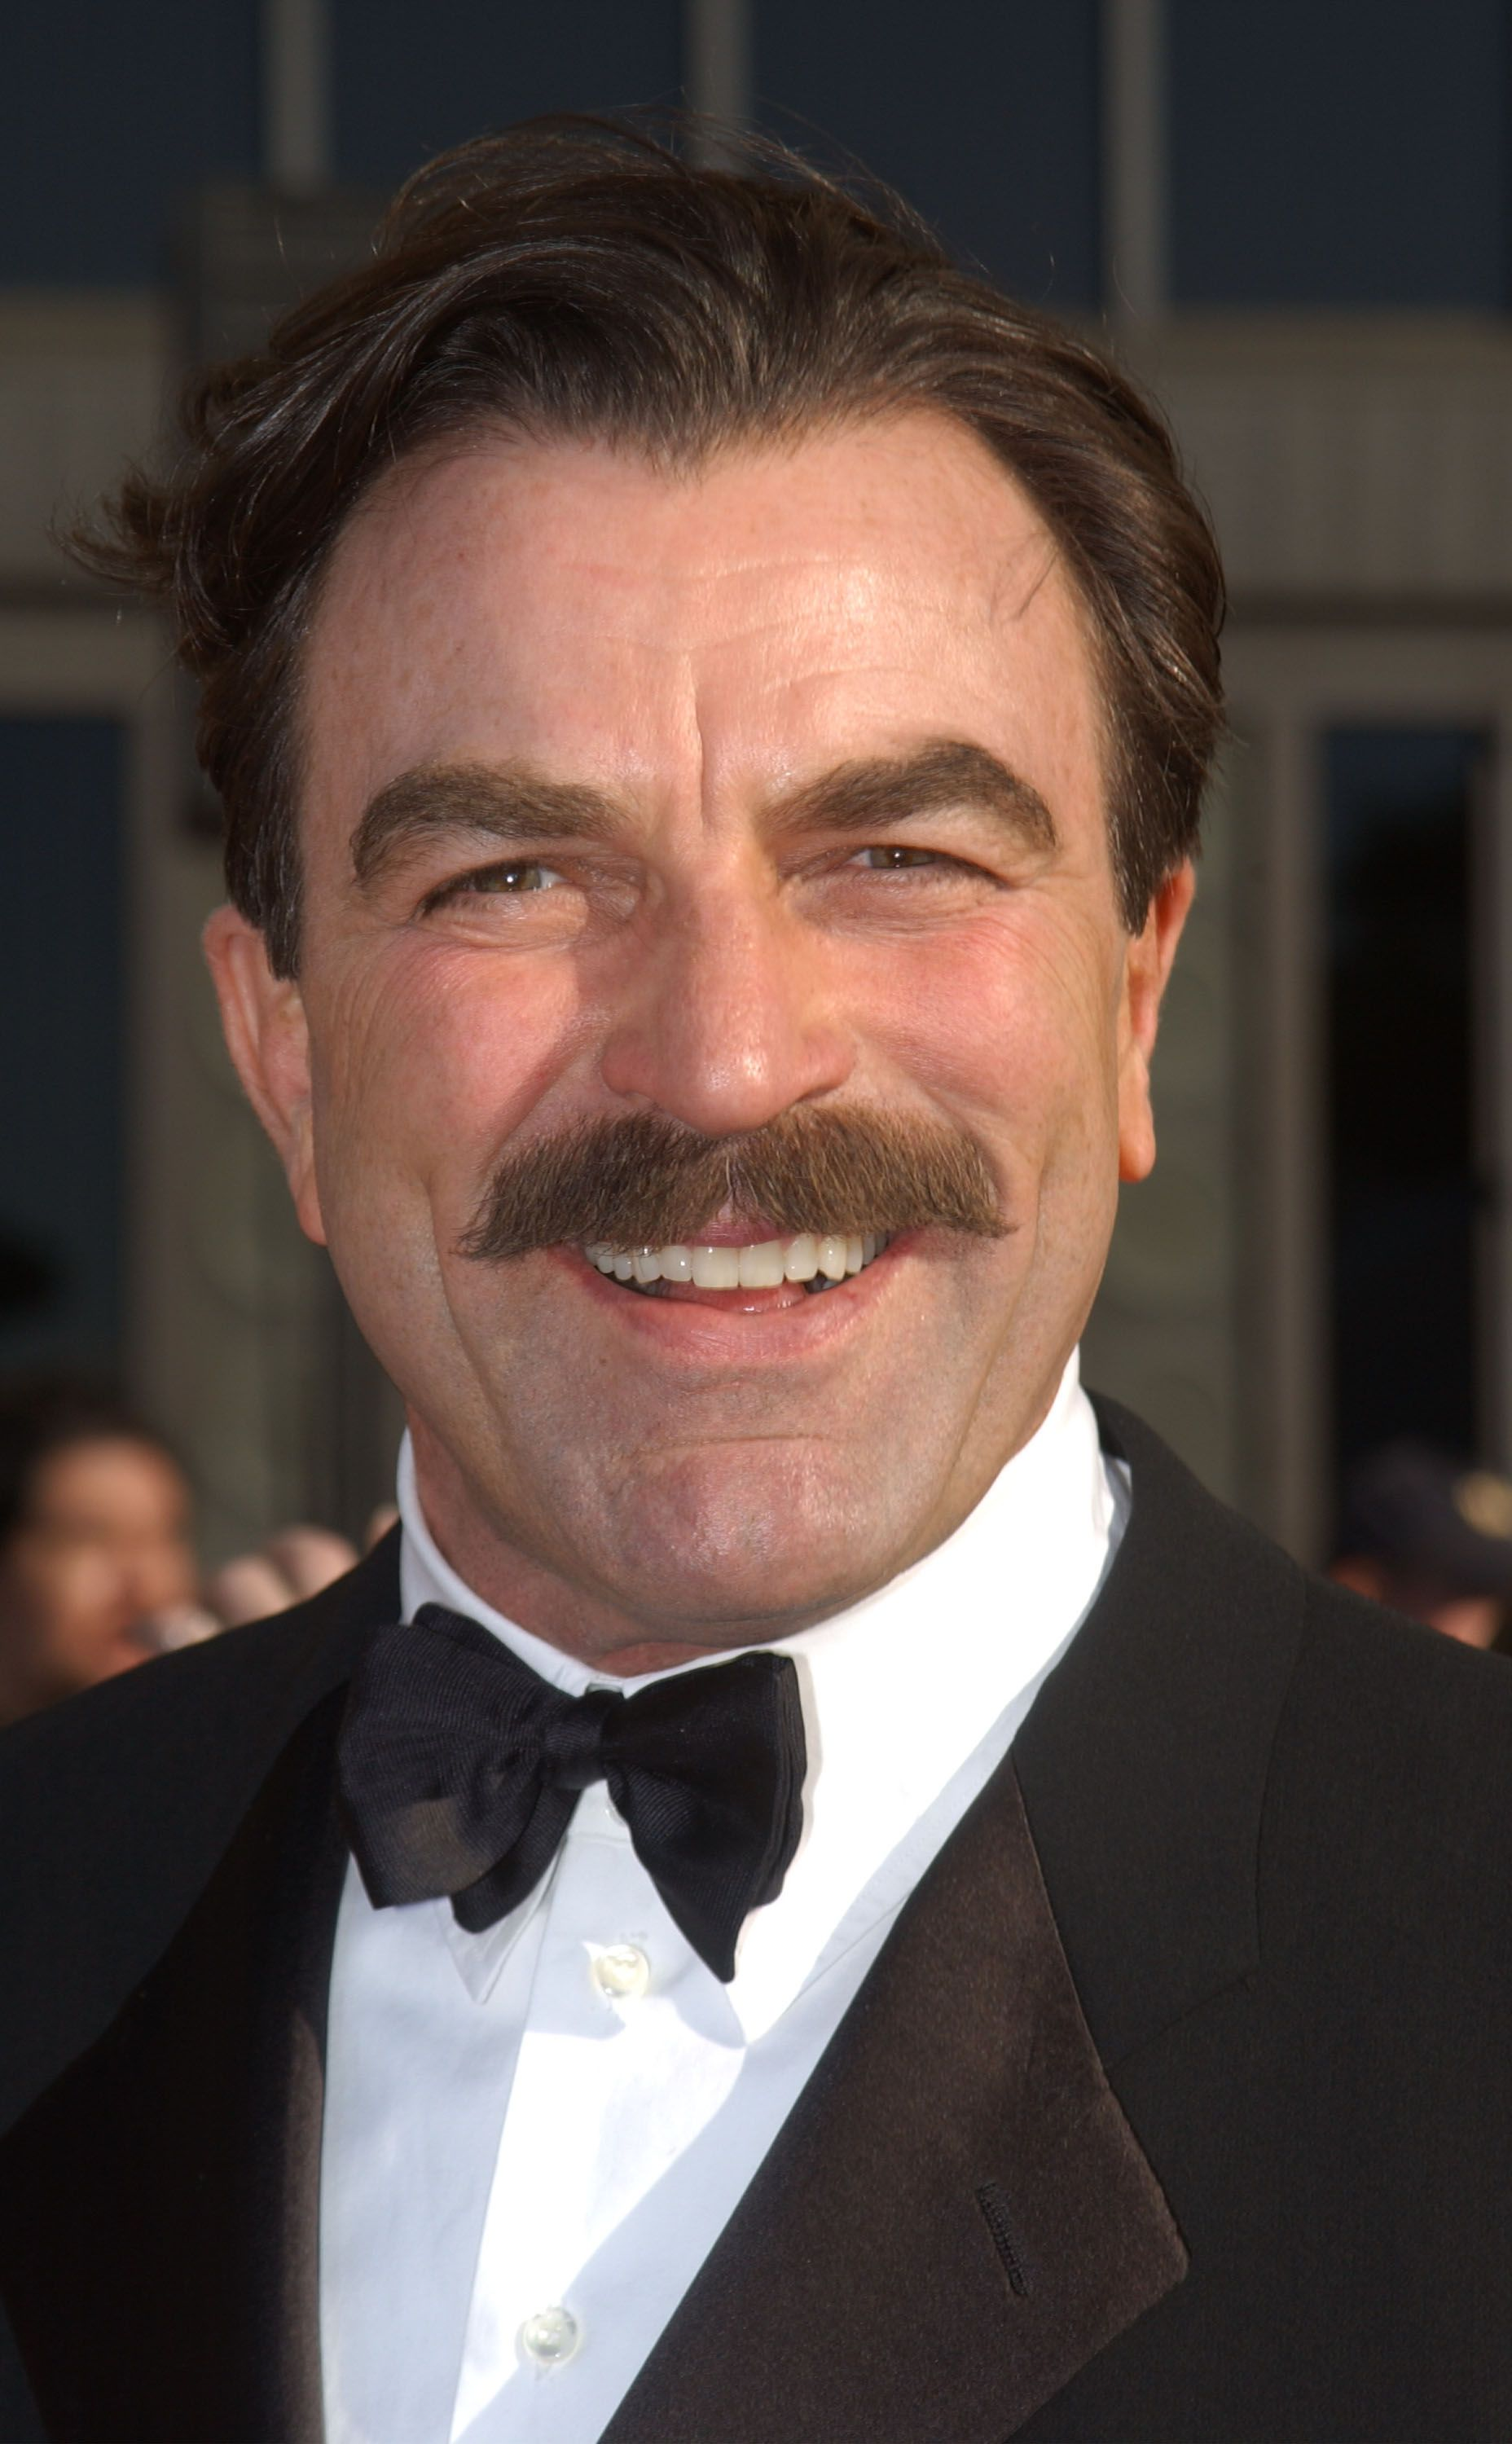 Tom Selleck during the 8th Annual Screen Actors Guild Awards at the Shrine Auditorium March 10, 2002. | Source: Getty Images